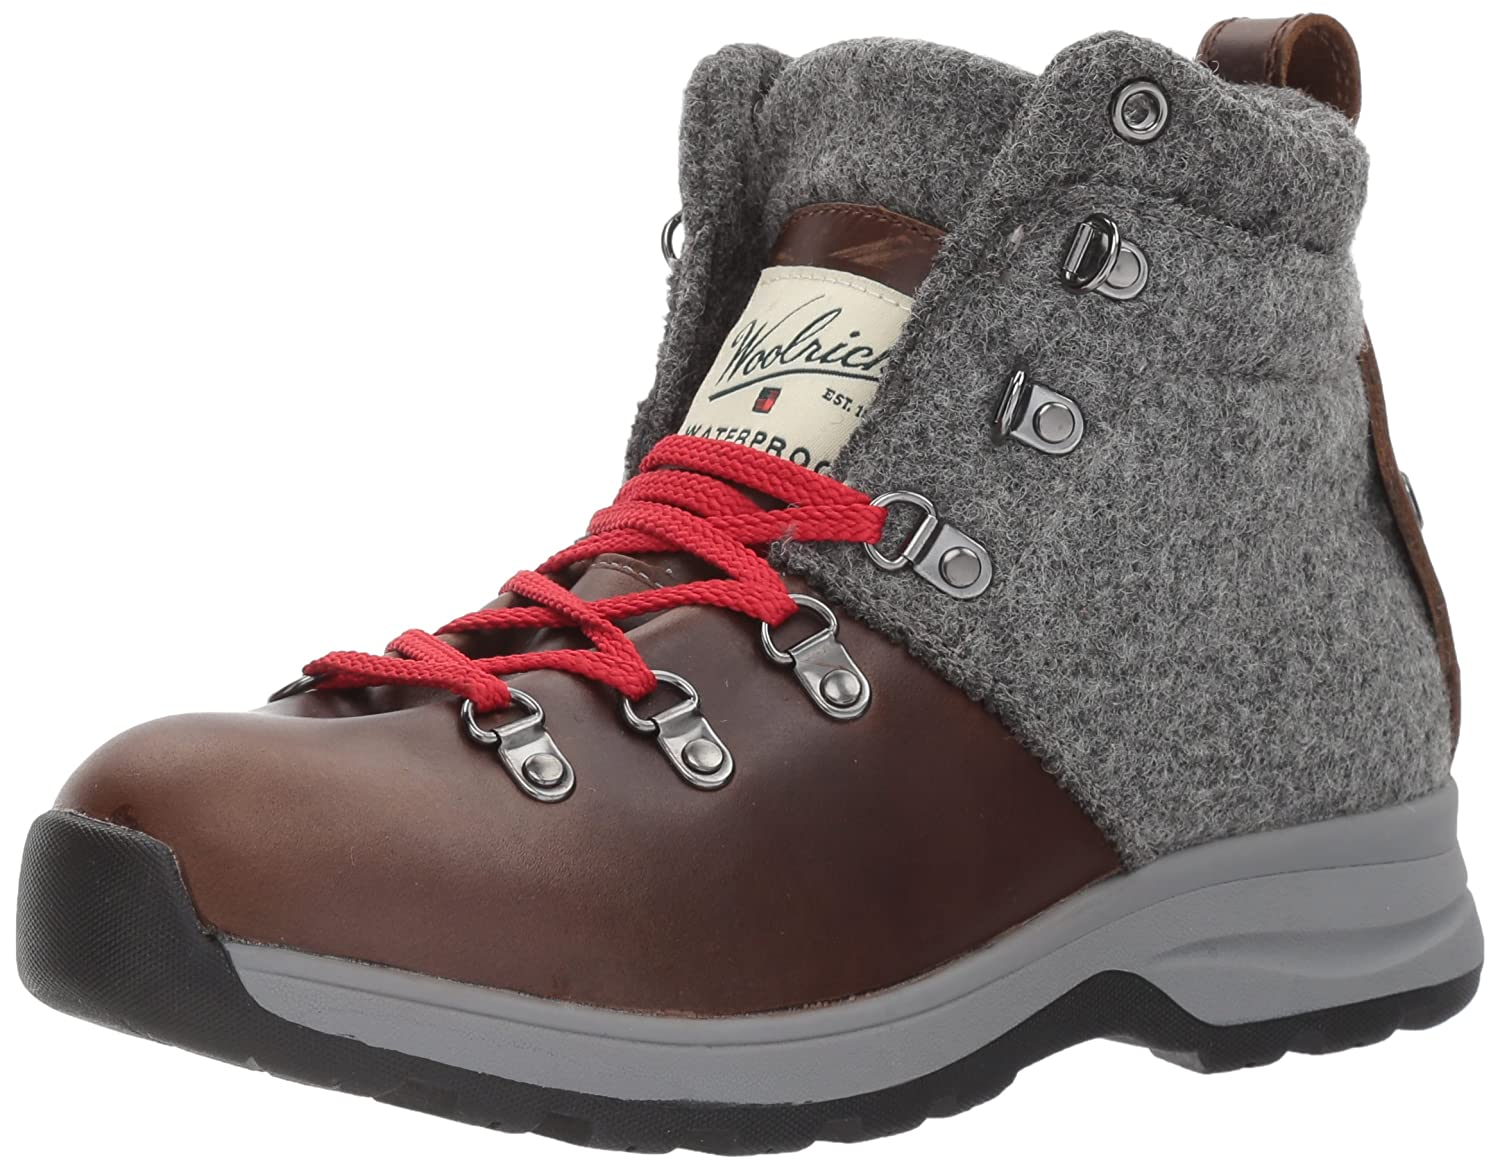 Woolrich Women's Rockies Ii Winter Boot B01MYZ4V1Z 8 B(M) US|Salt Marsh/Ash